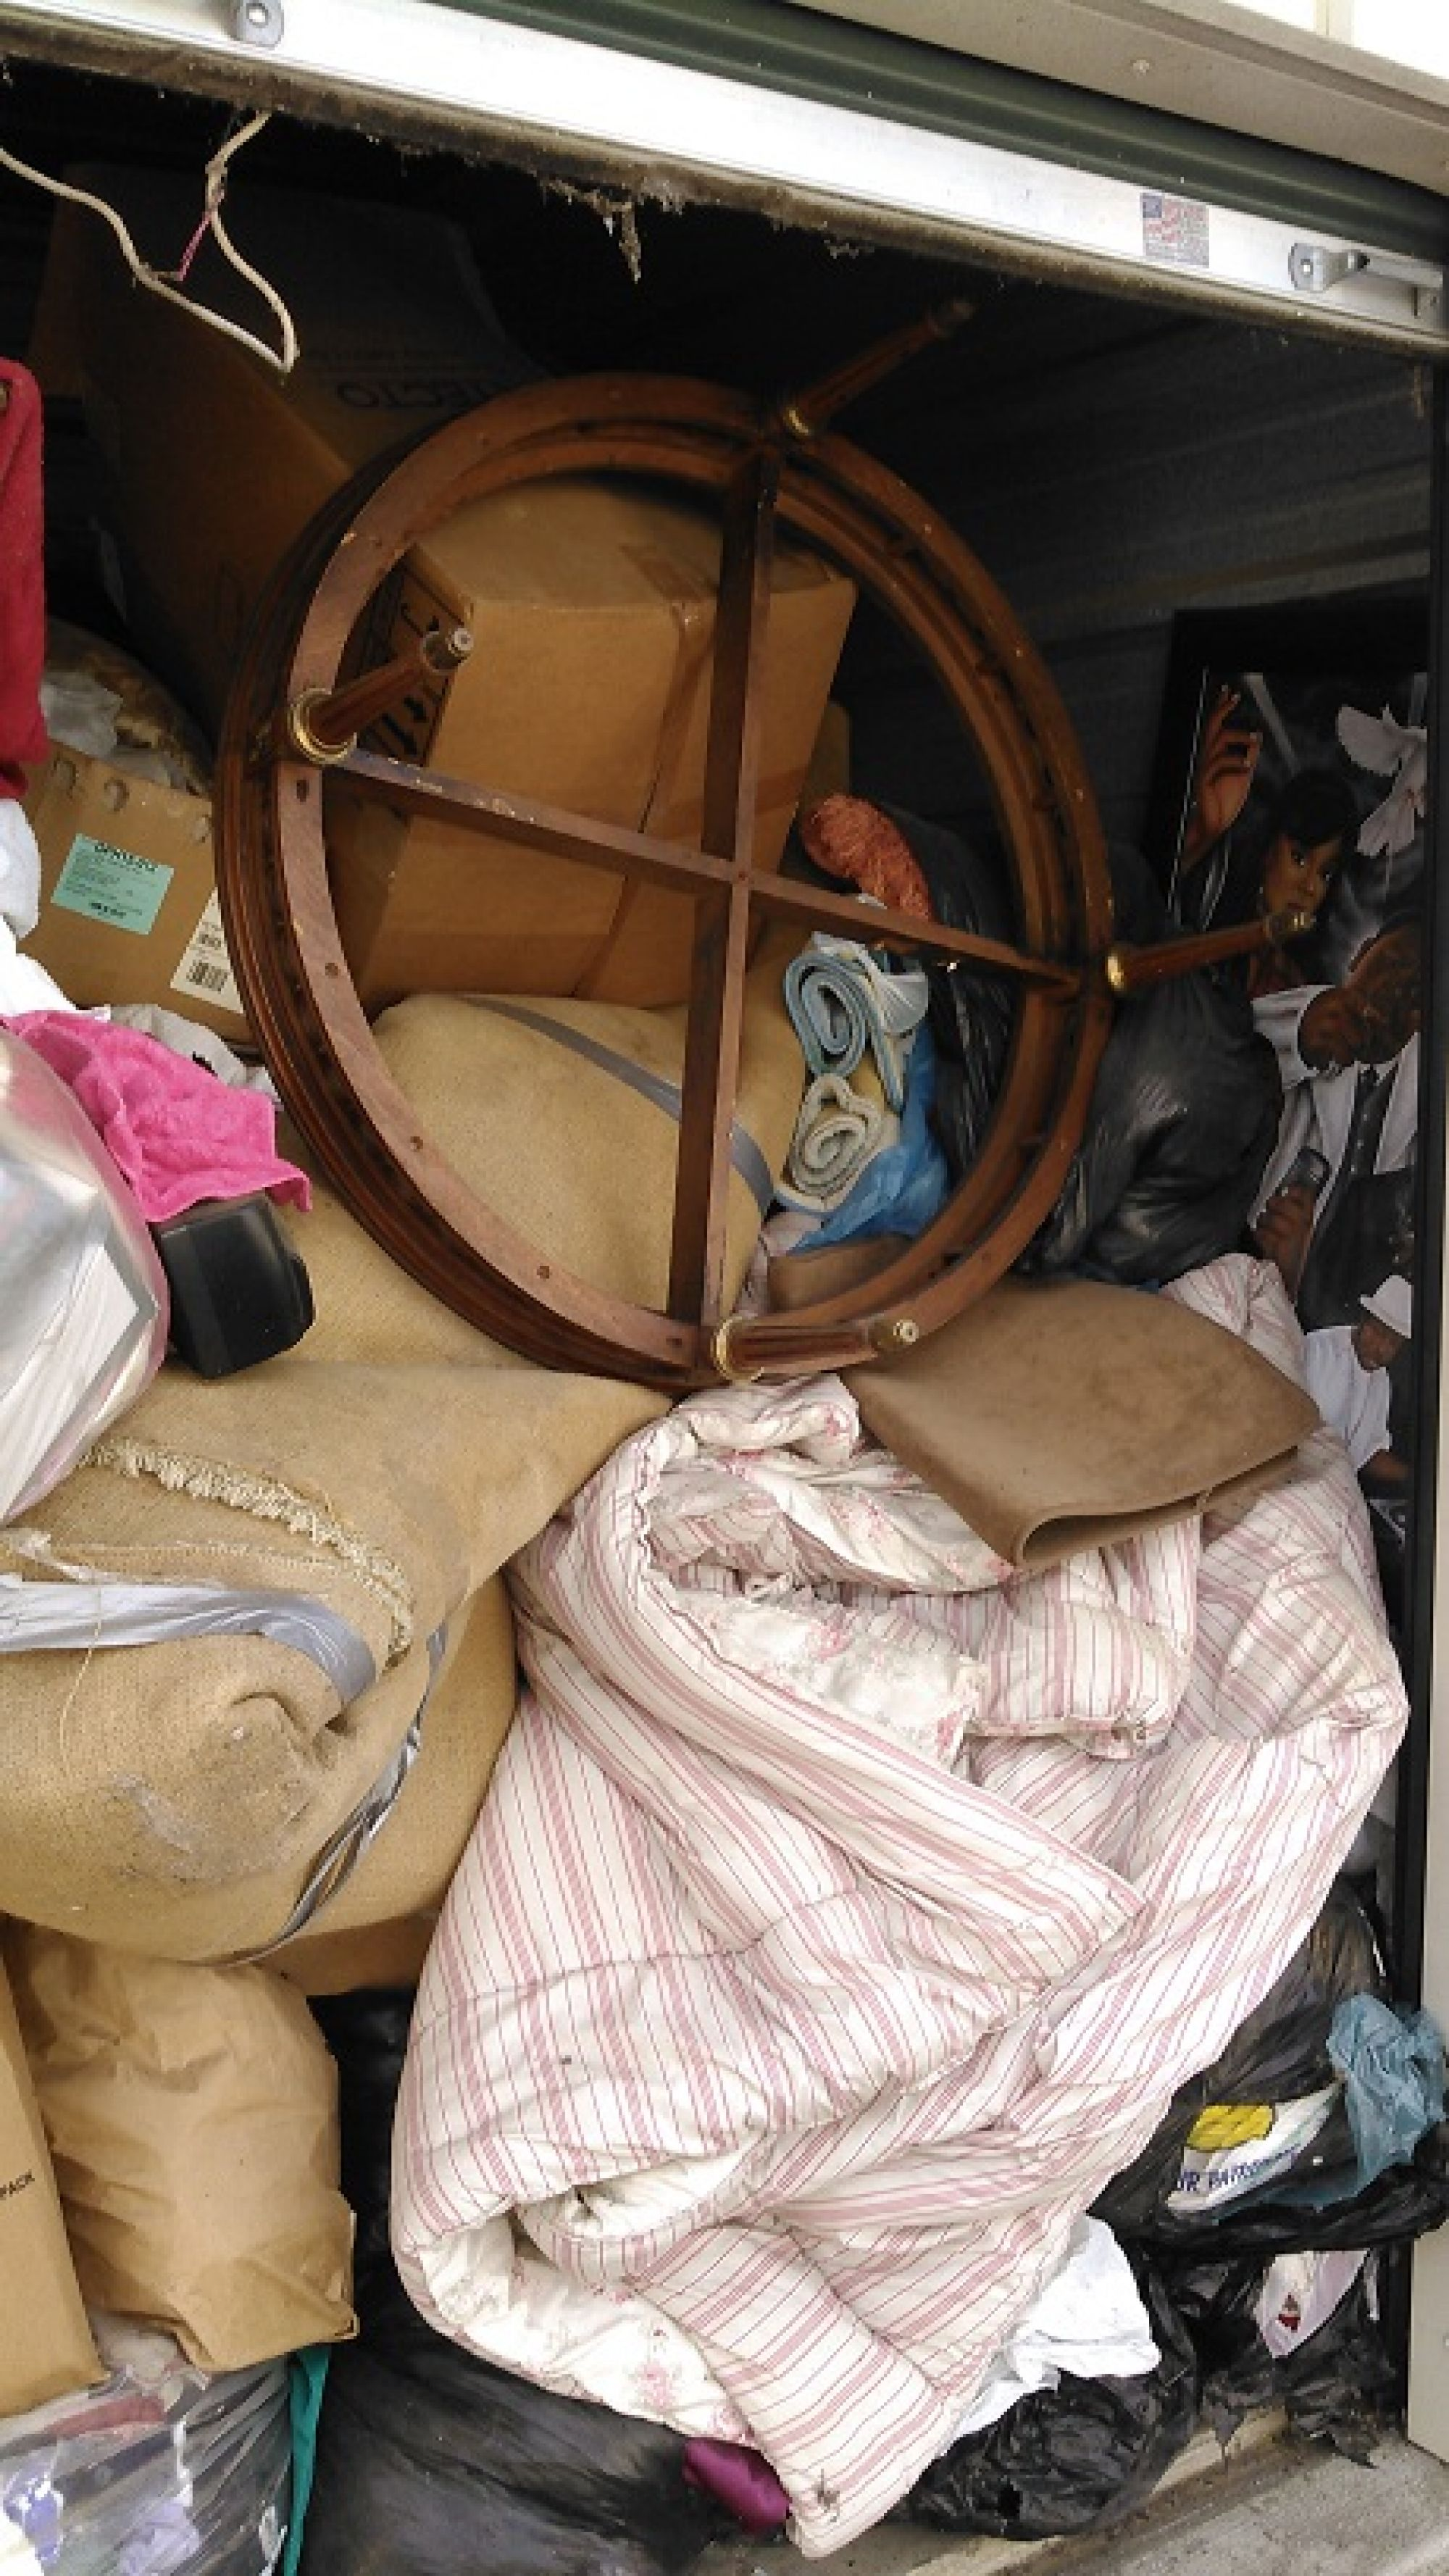 CLICK THUMBNAIL TO VIEW. Fayetteville NC. Extra Space Storage & Storage Unit Auction: 397751 | Fayetteville NC | StorageTreasures.com